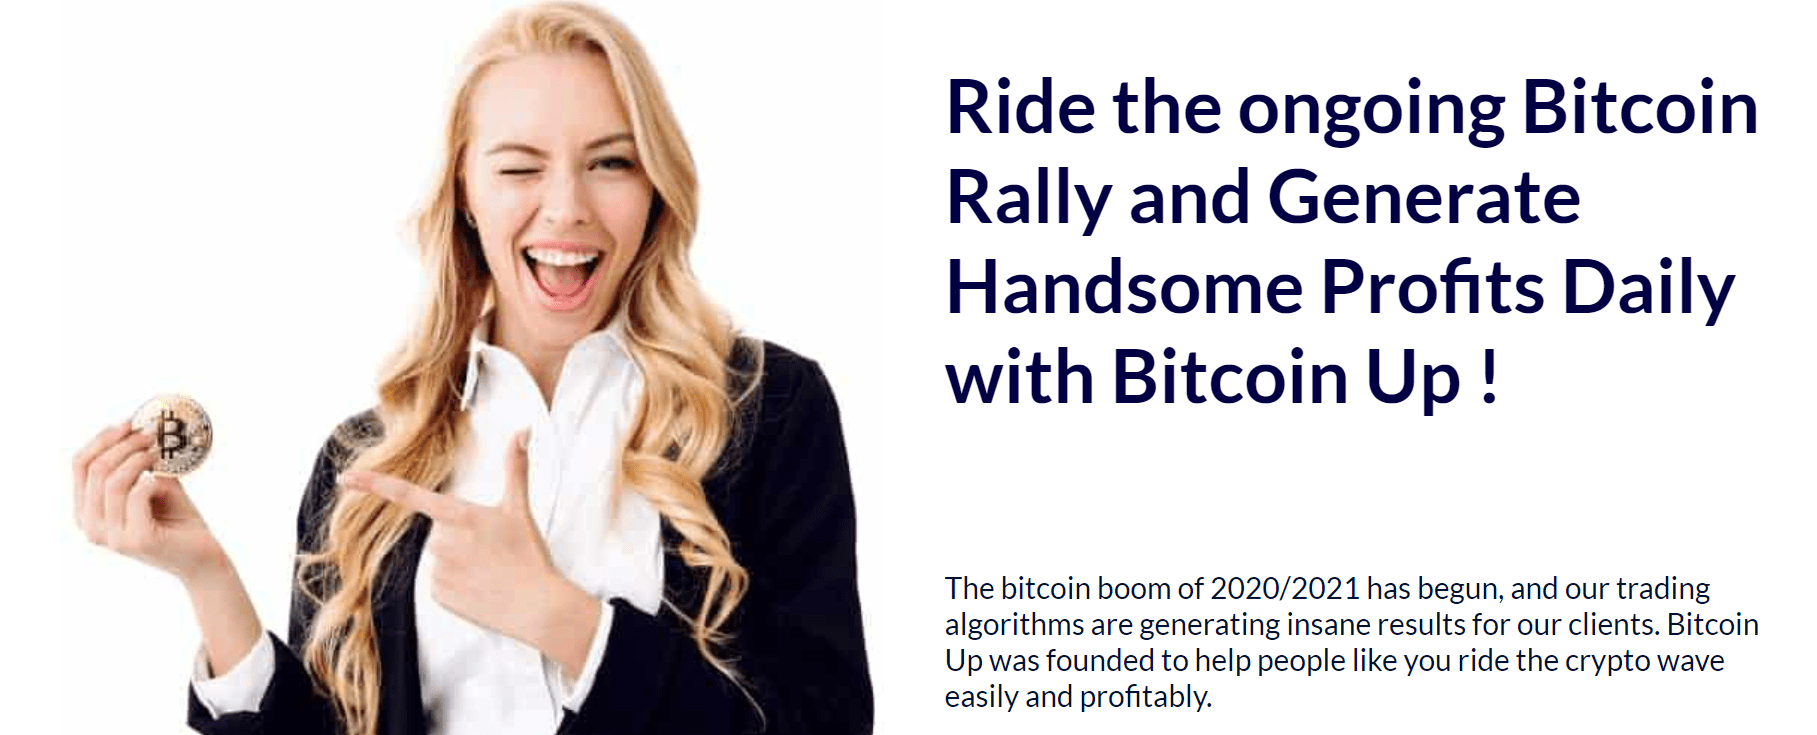 bitcoin up website claims